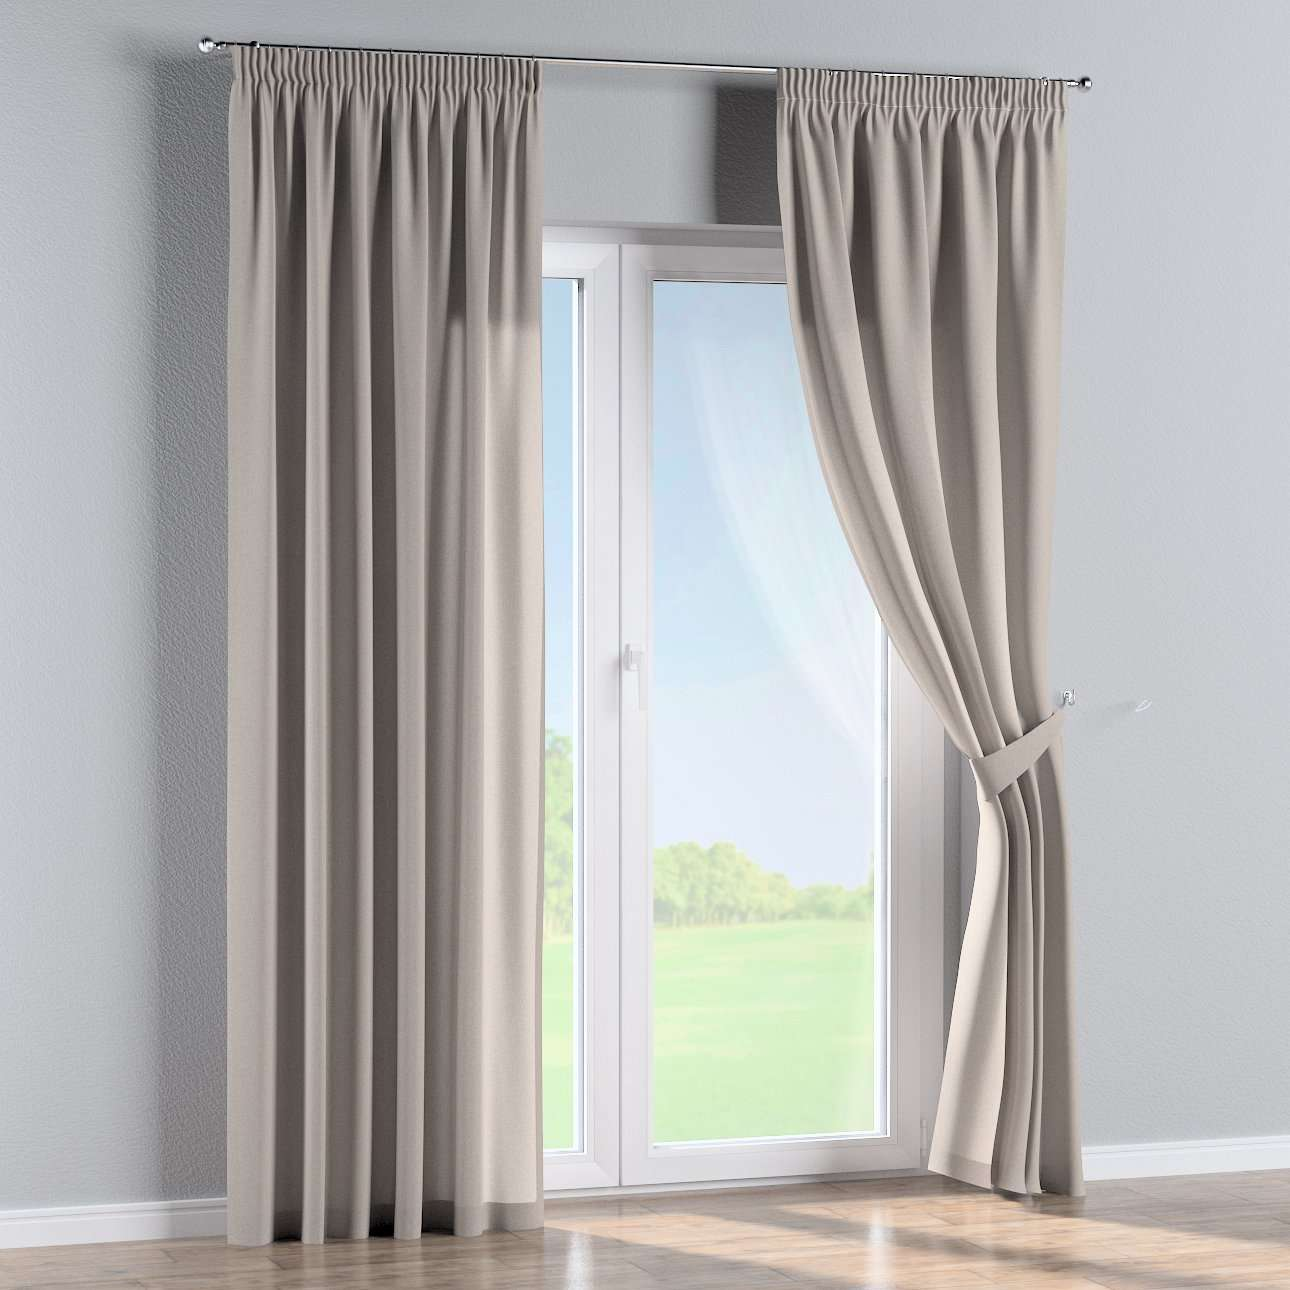 Pencil pleat curtains in collection Woolly, fabric: 142-35